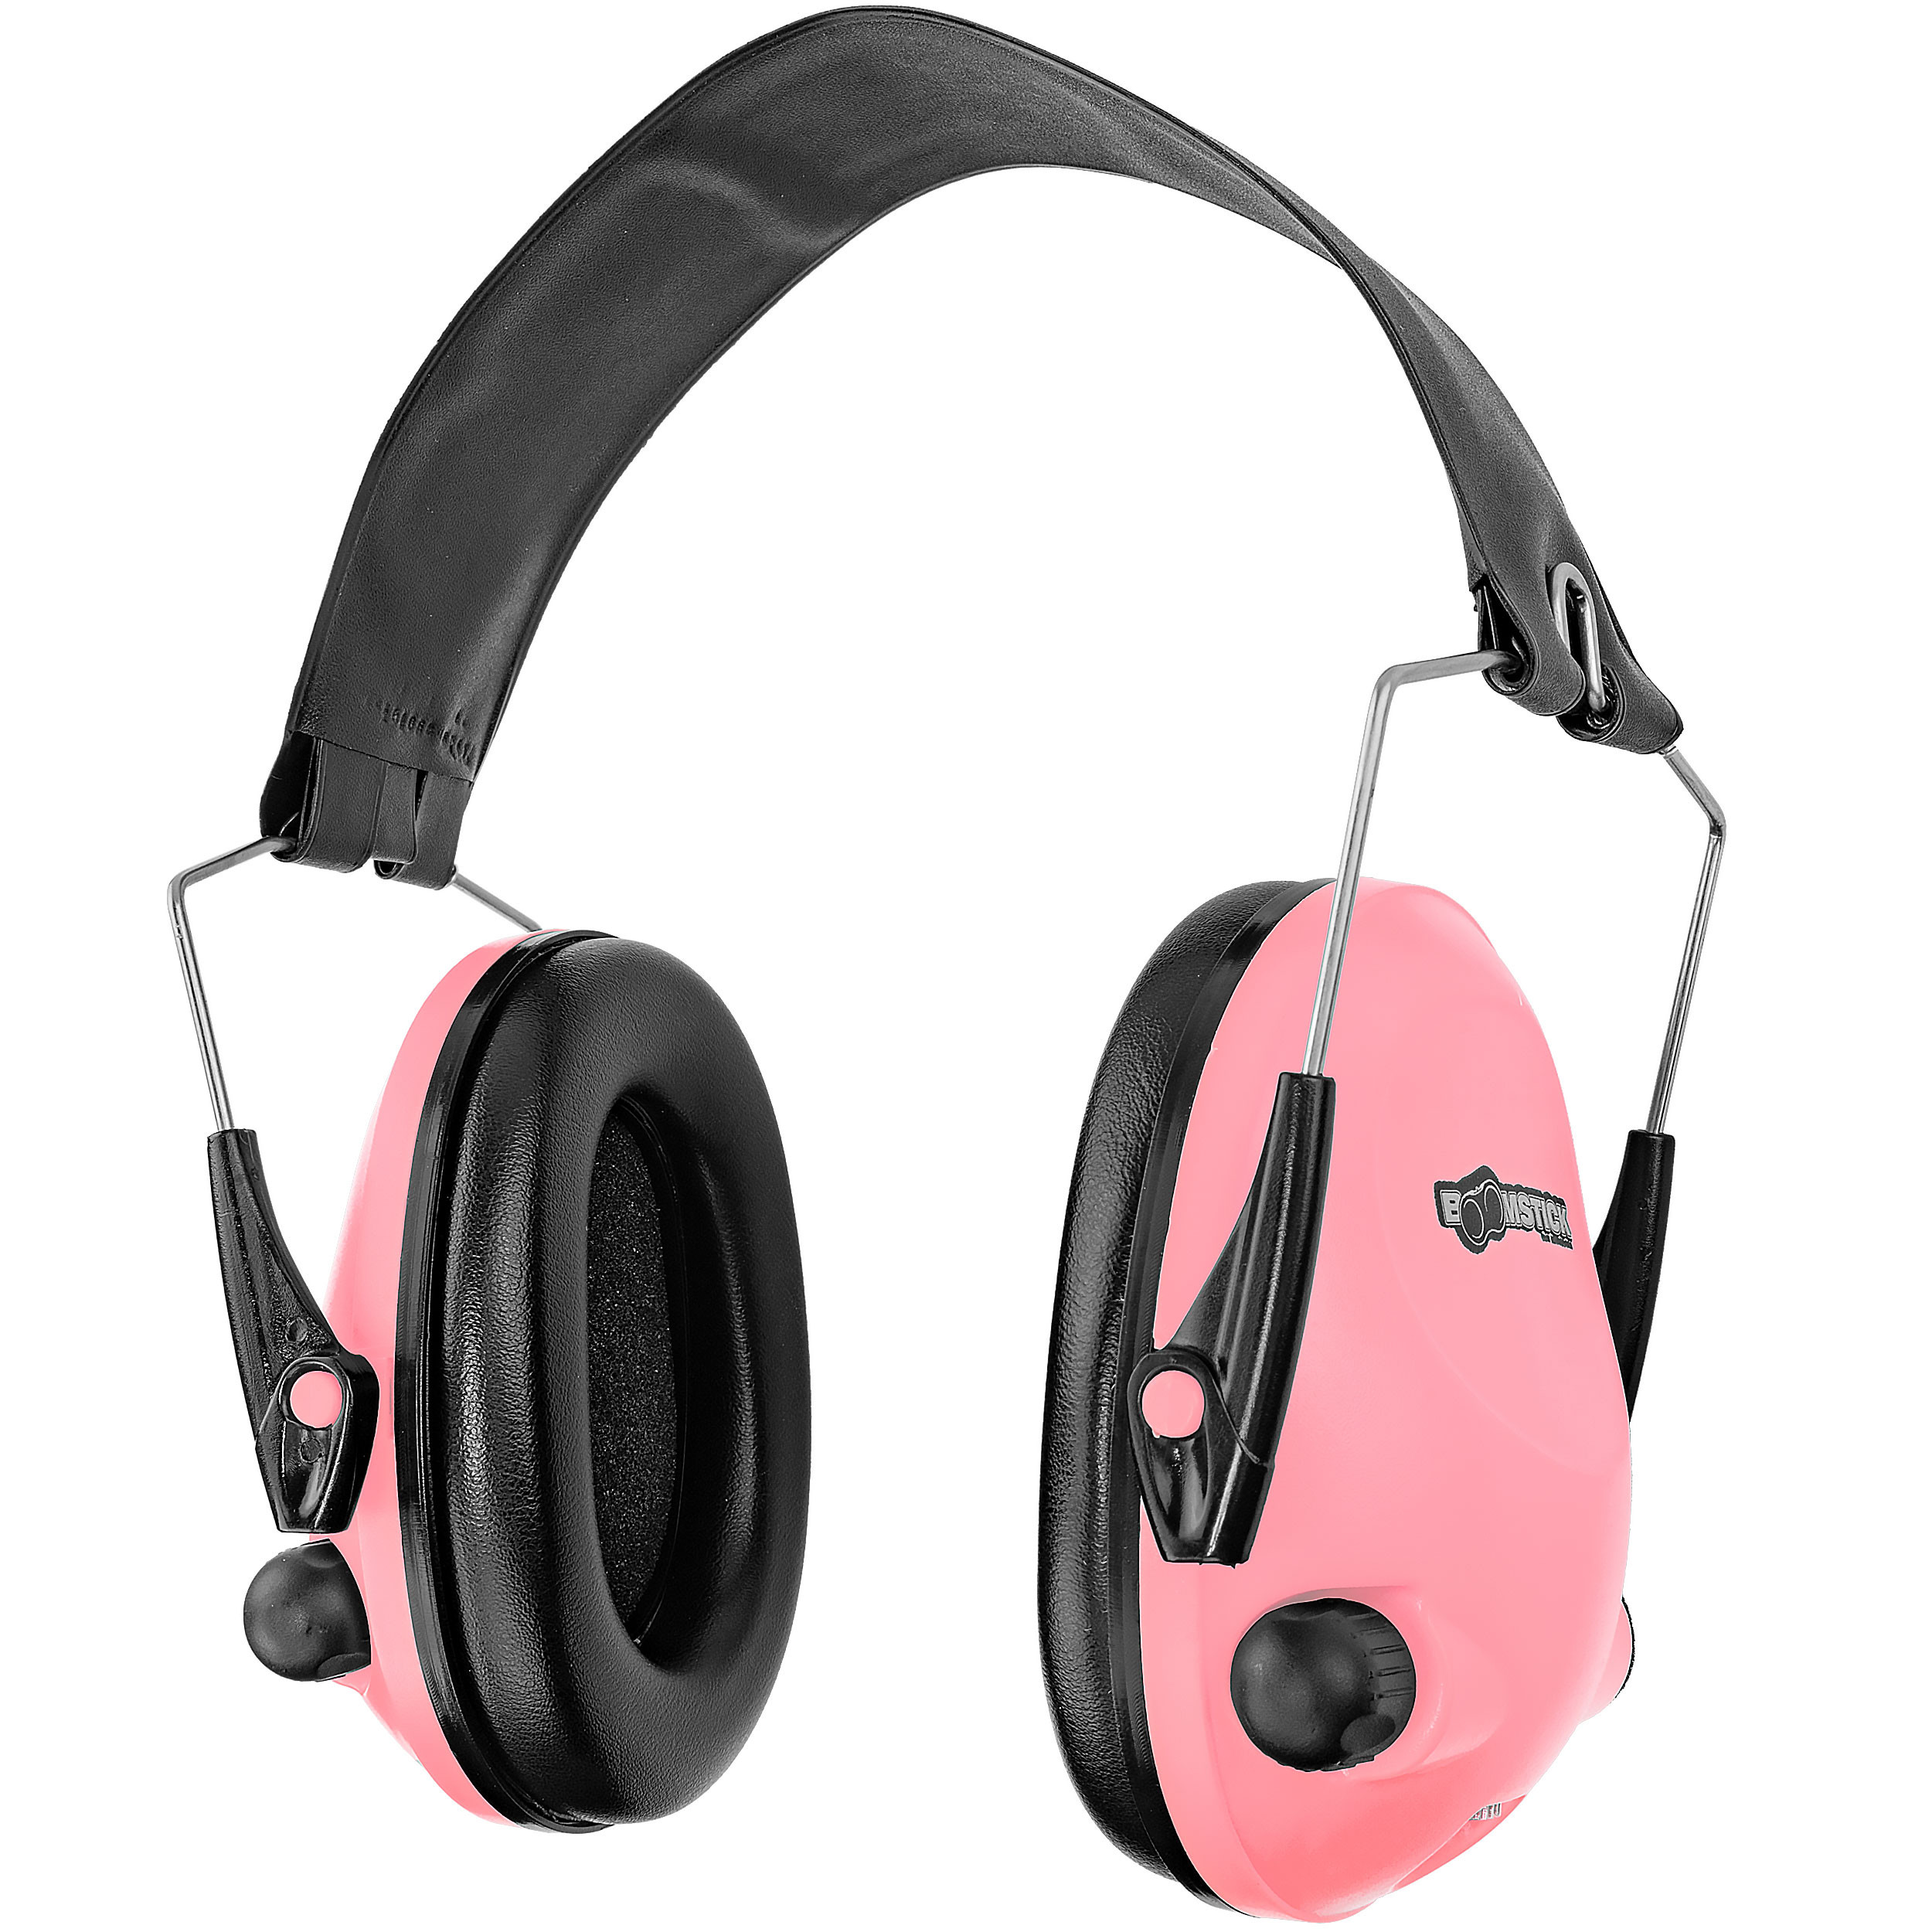 Boomstick Gun Accessories Electronic Ear Muff, Pink